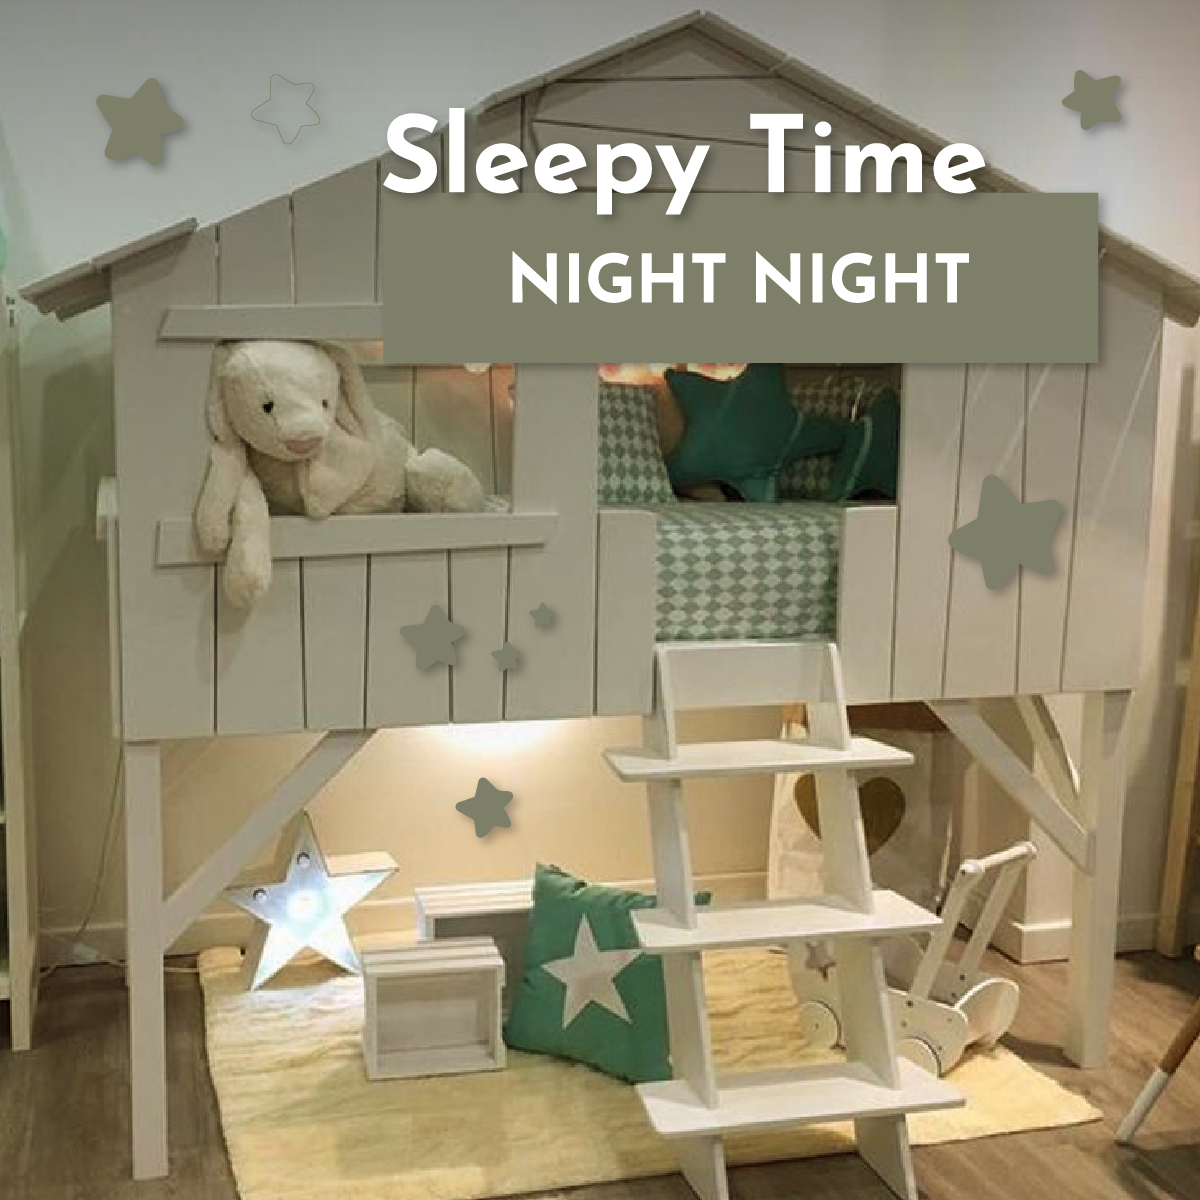 Sleepy Time - Whimsy Castle: A collaboration between two great friends!